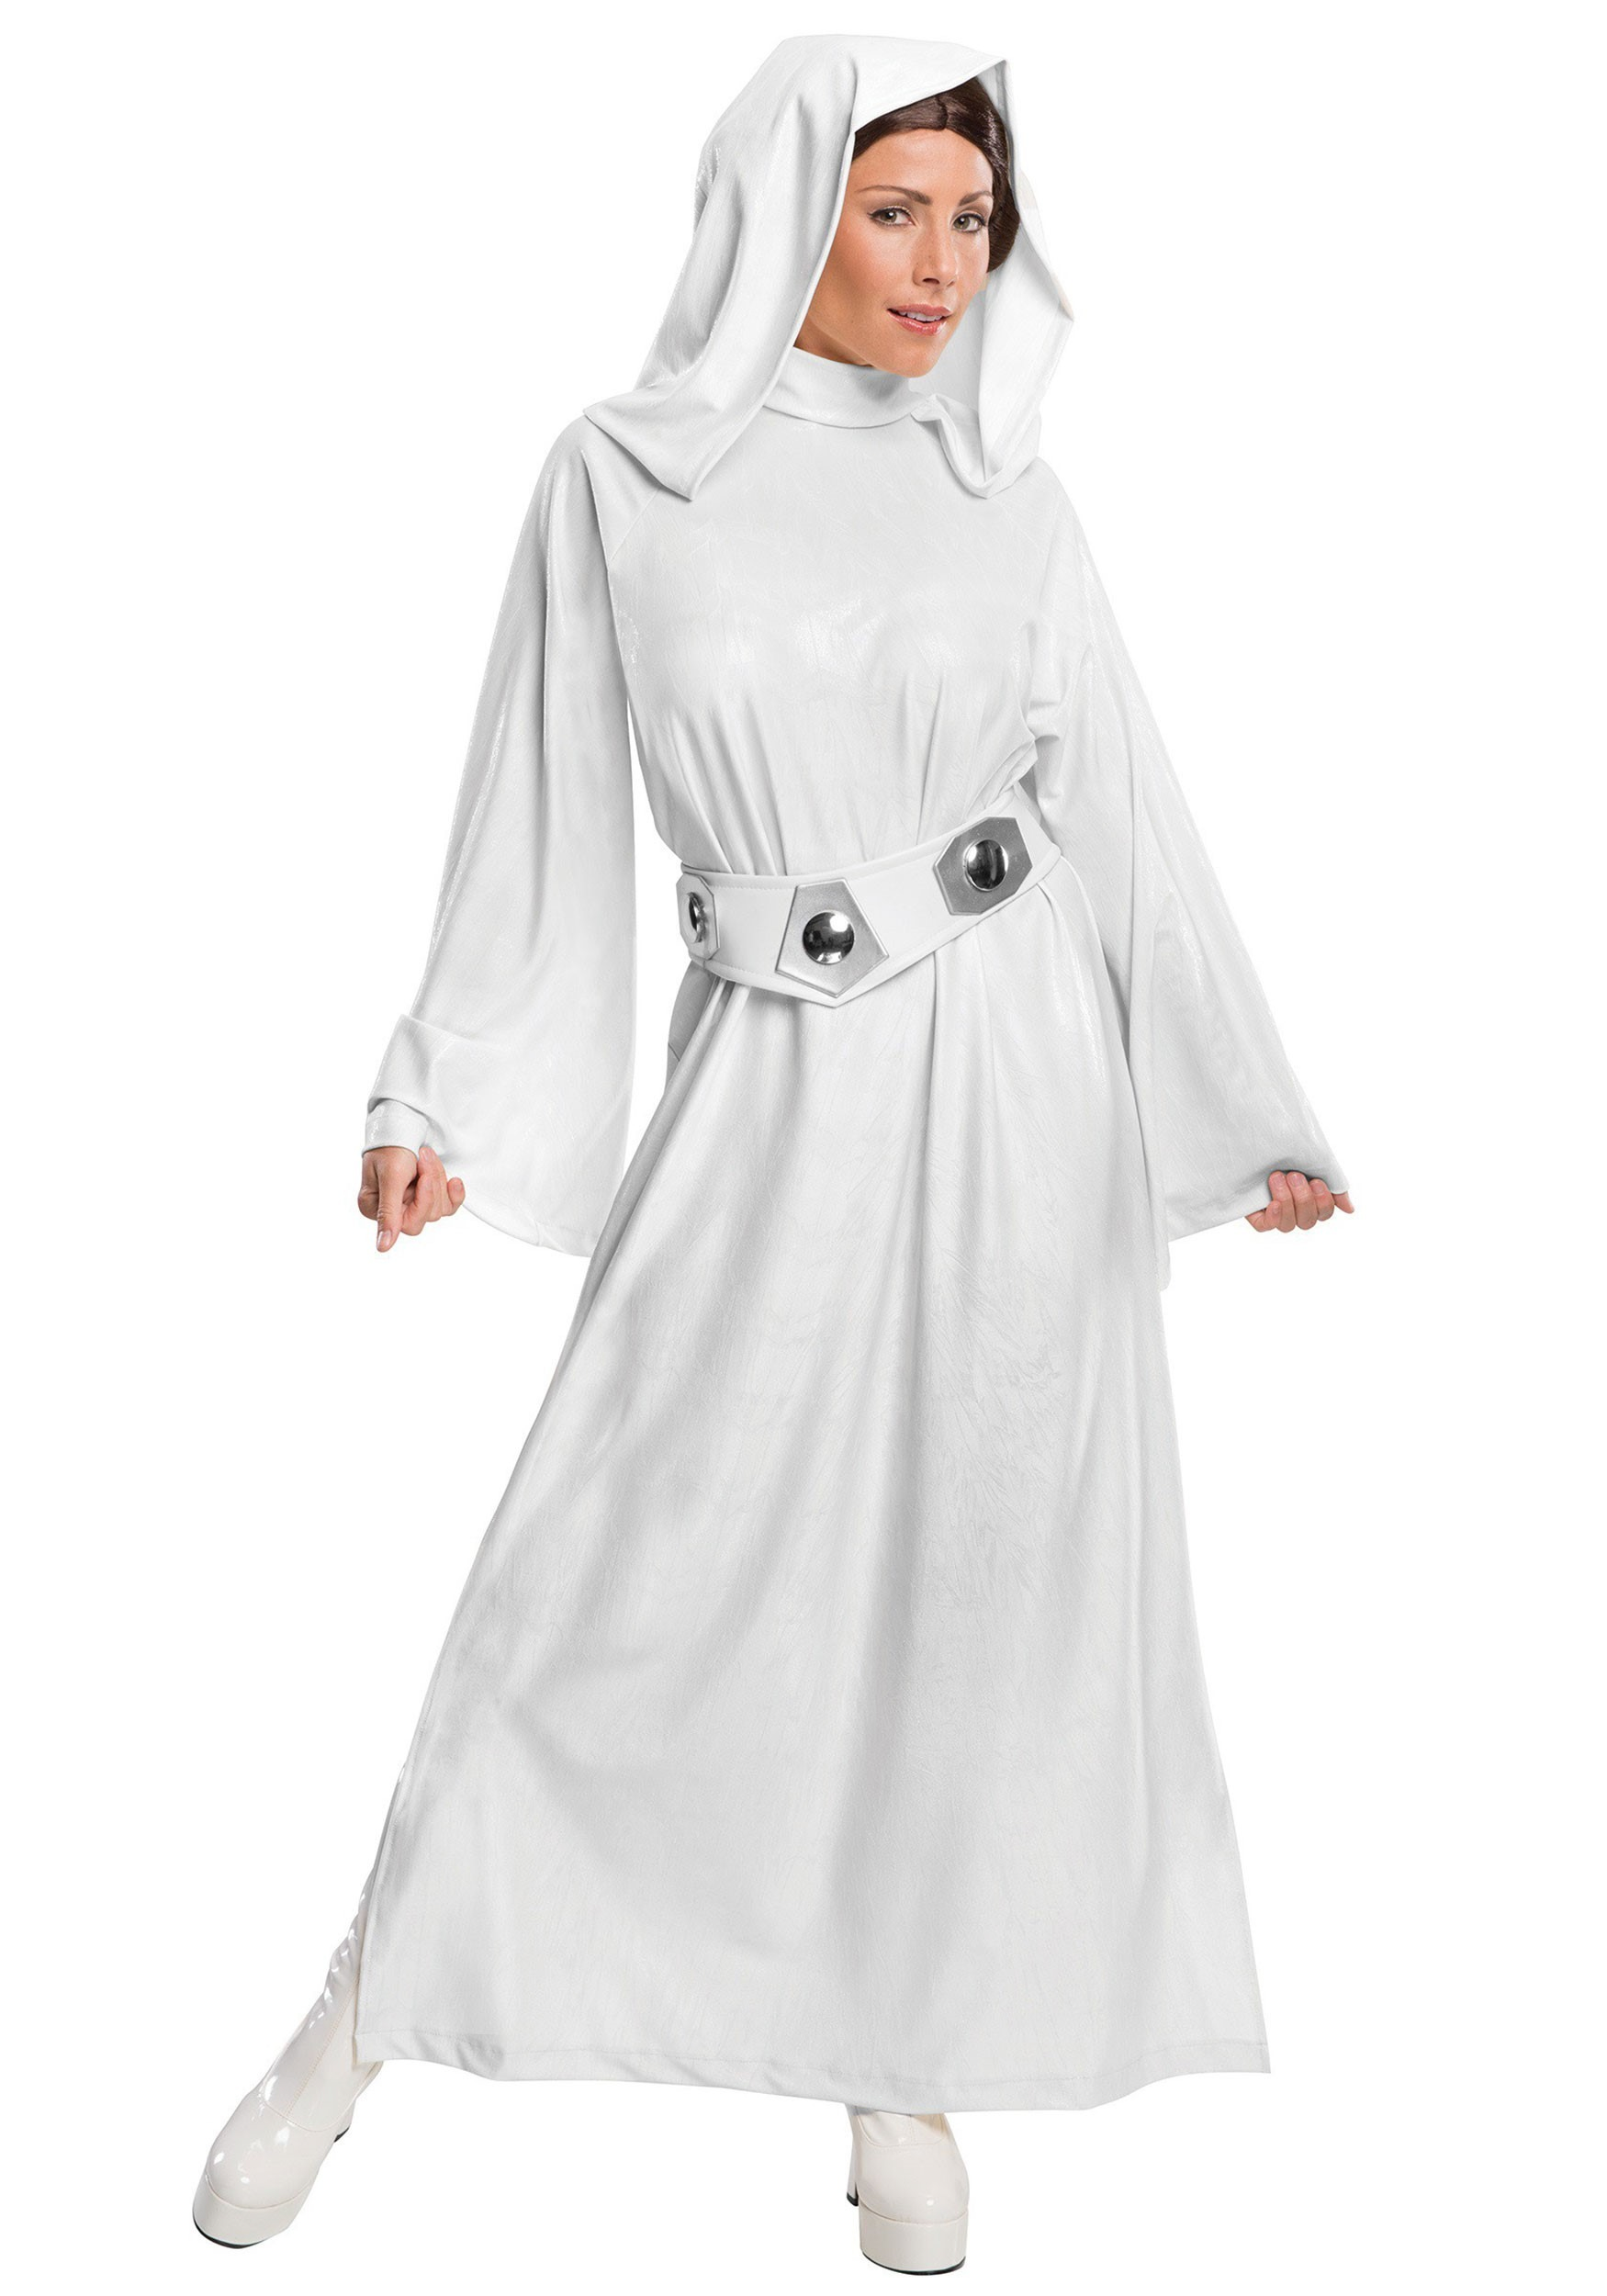 Star Wars Adult Princess Leia Costumes